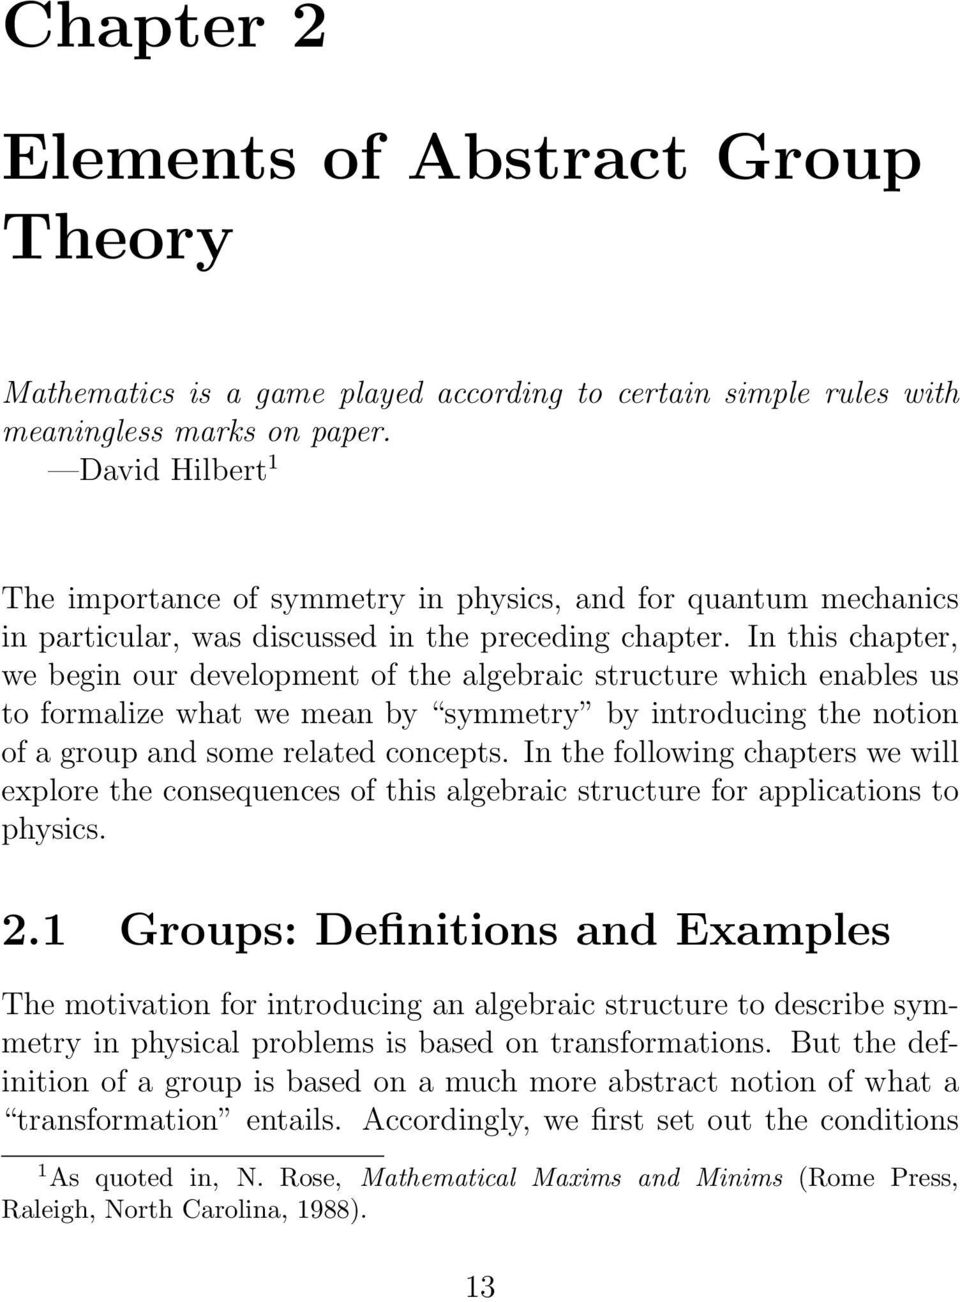 In this chapter, we begin our development of the algebraic structure which enables us to formalize what we mean by symmetry by introducing the notion of a group and some related concepts.